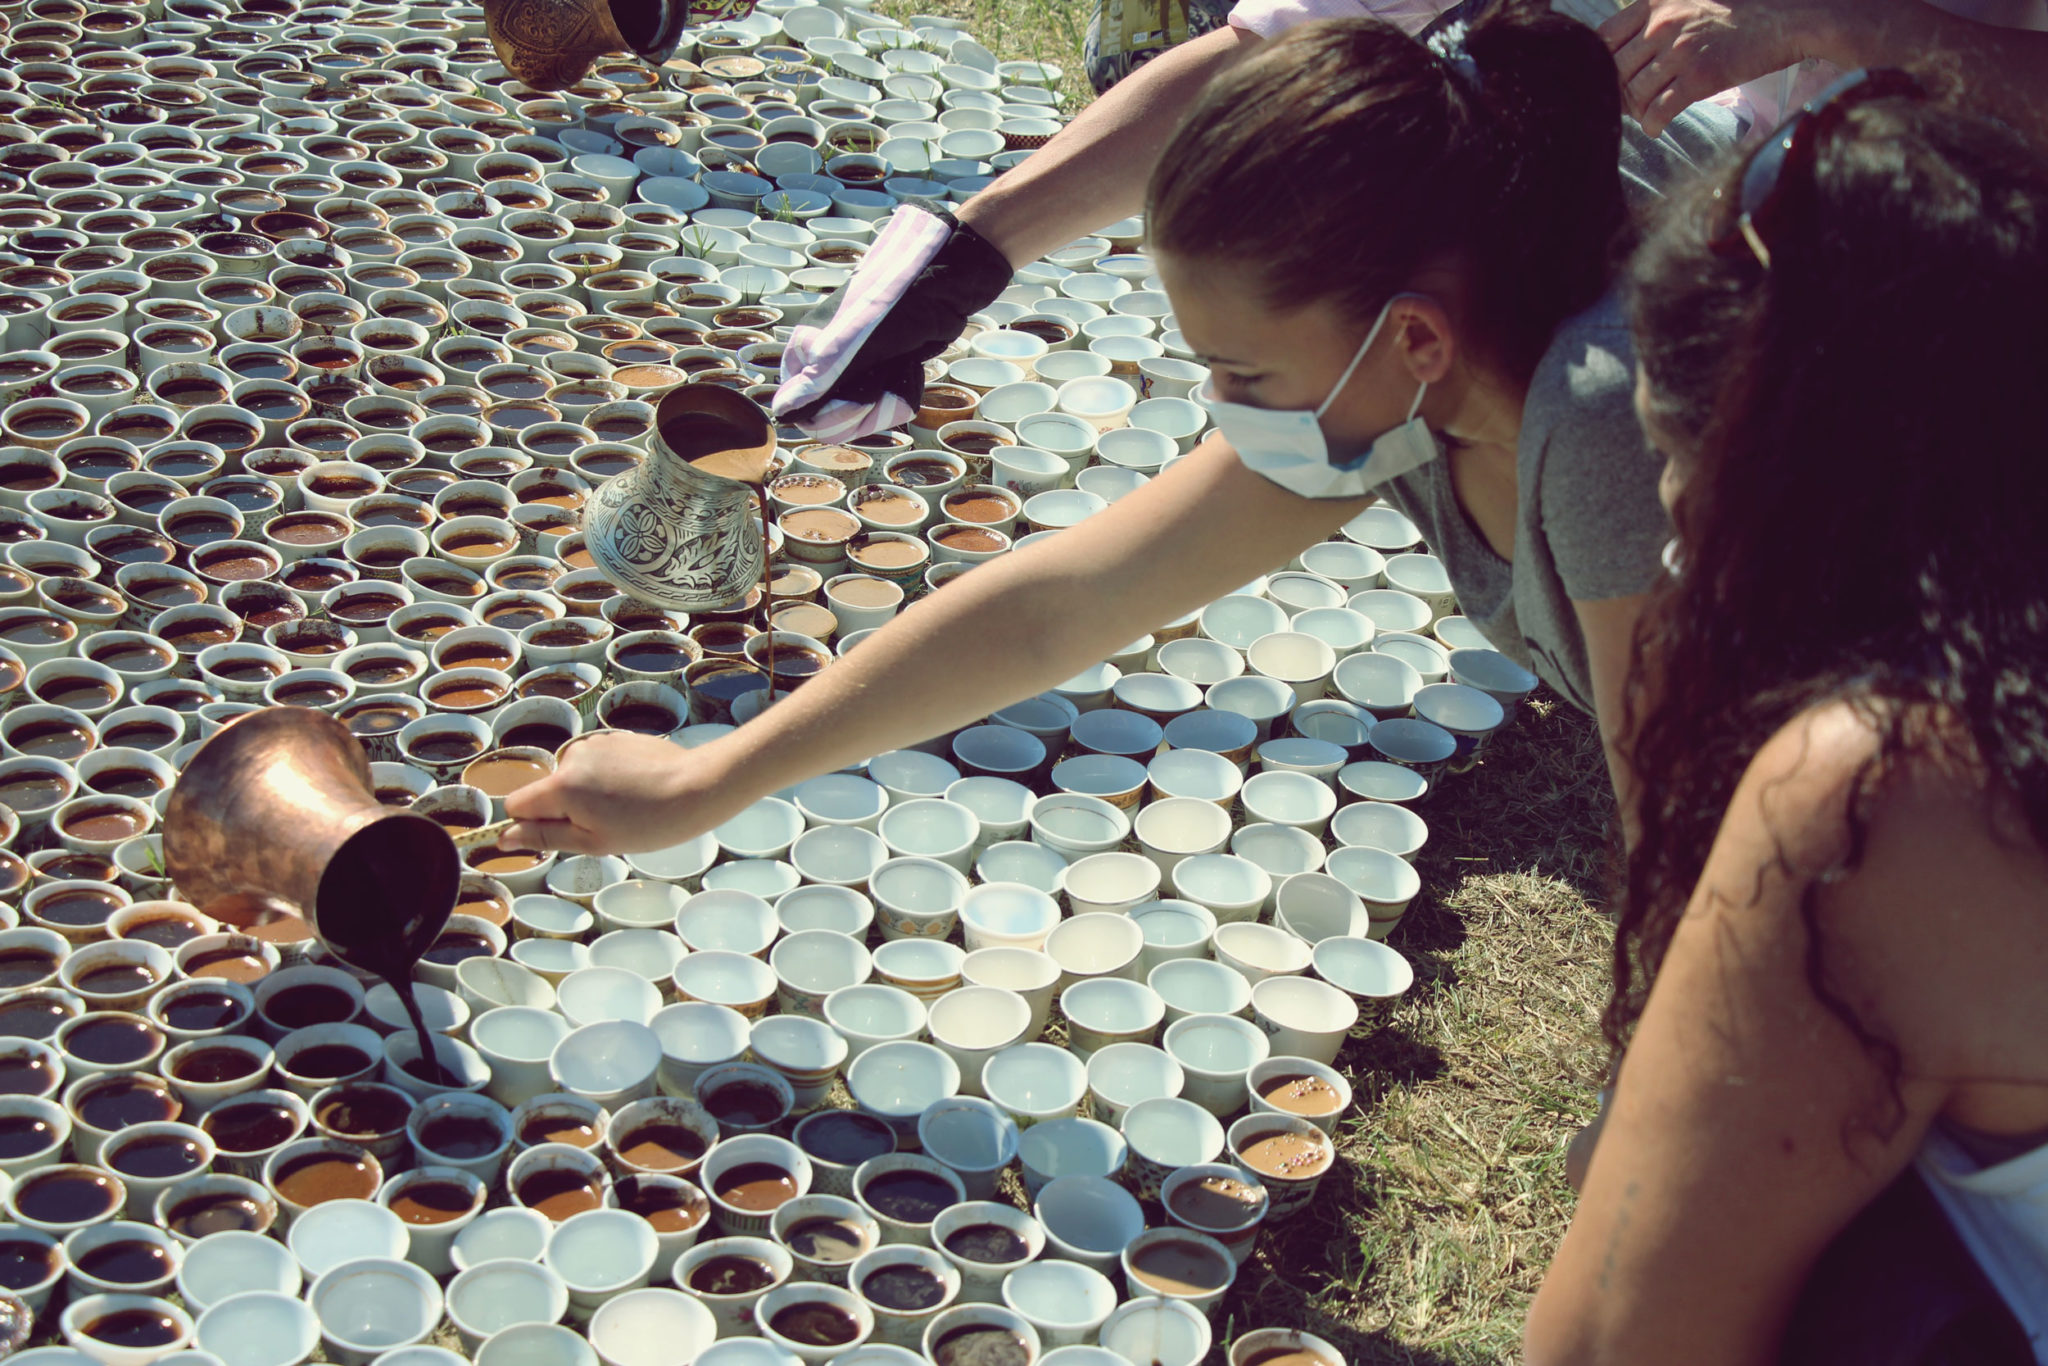 Various people sit on the ground in front of a large number of white cups, more than can easily be counted, that are closely packed together. Roughly half of the cups are filled with a brown liquid. Three people are pouring more coffee from metal containers into cups.